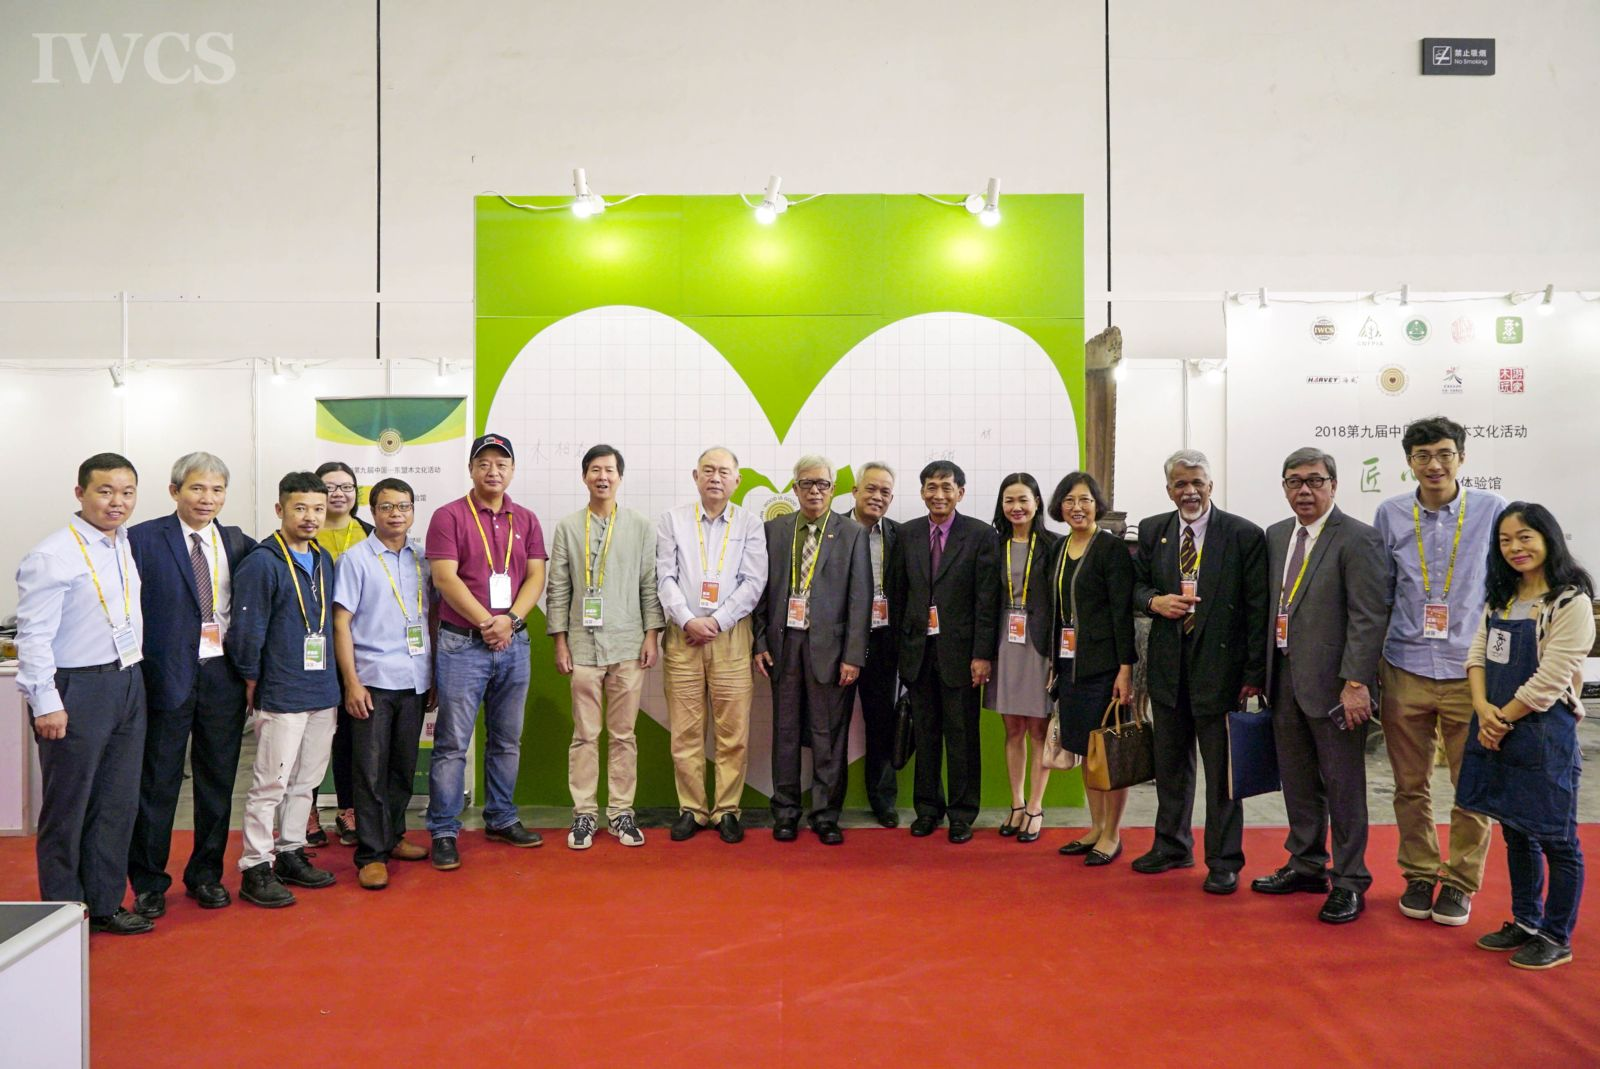 The 9th China-ASEAN Wood Culture Event